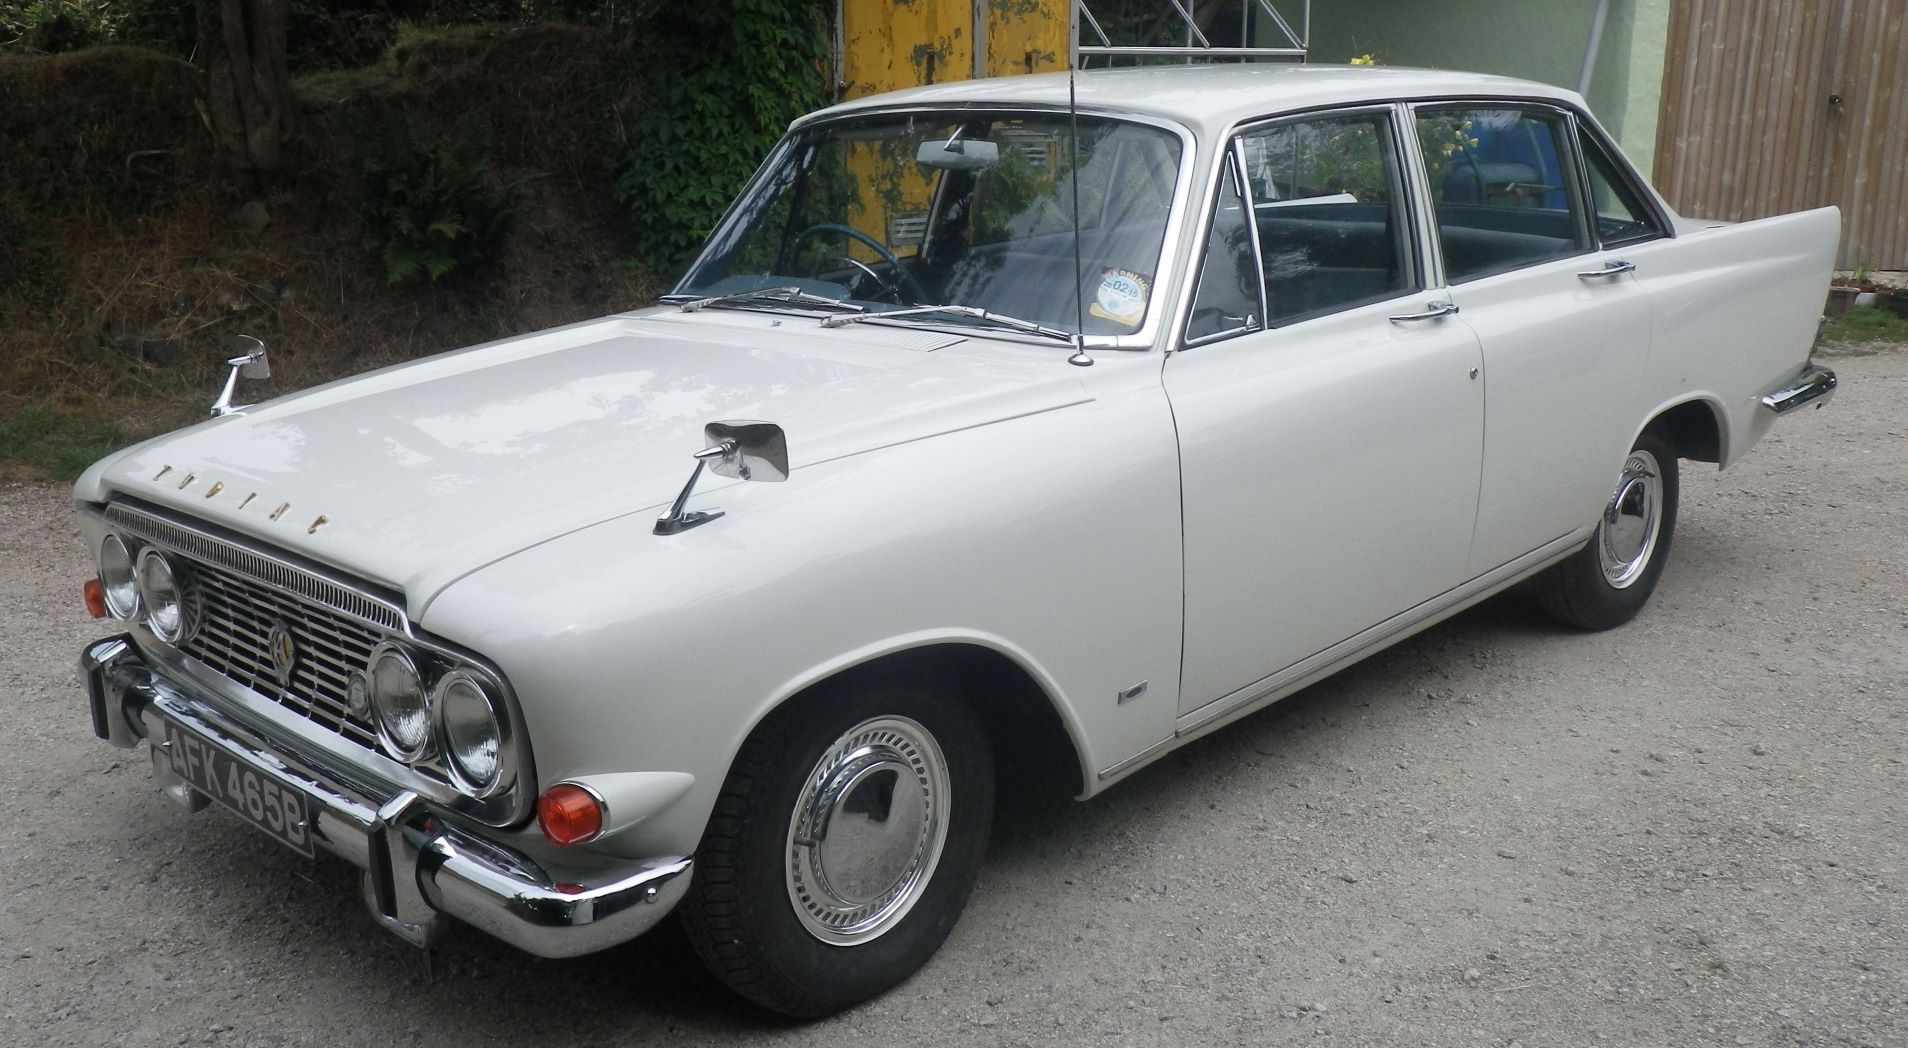 Ford Zodiac Executive with just 26,000 miles on the clock set to fetch £10,000